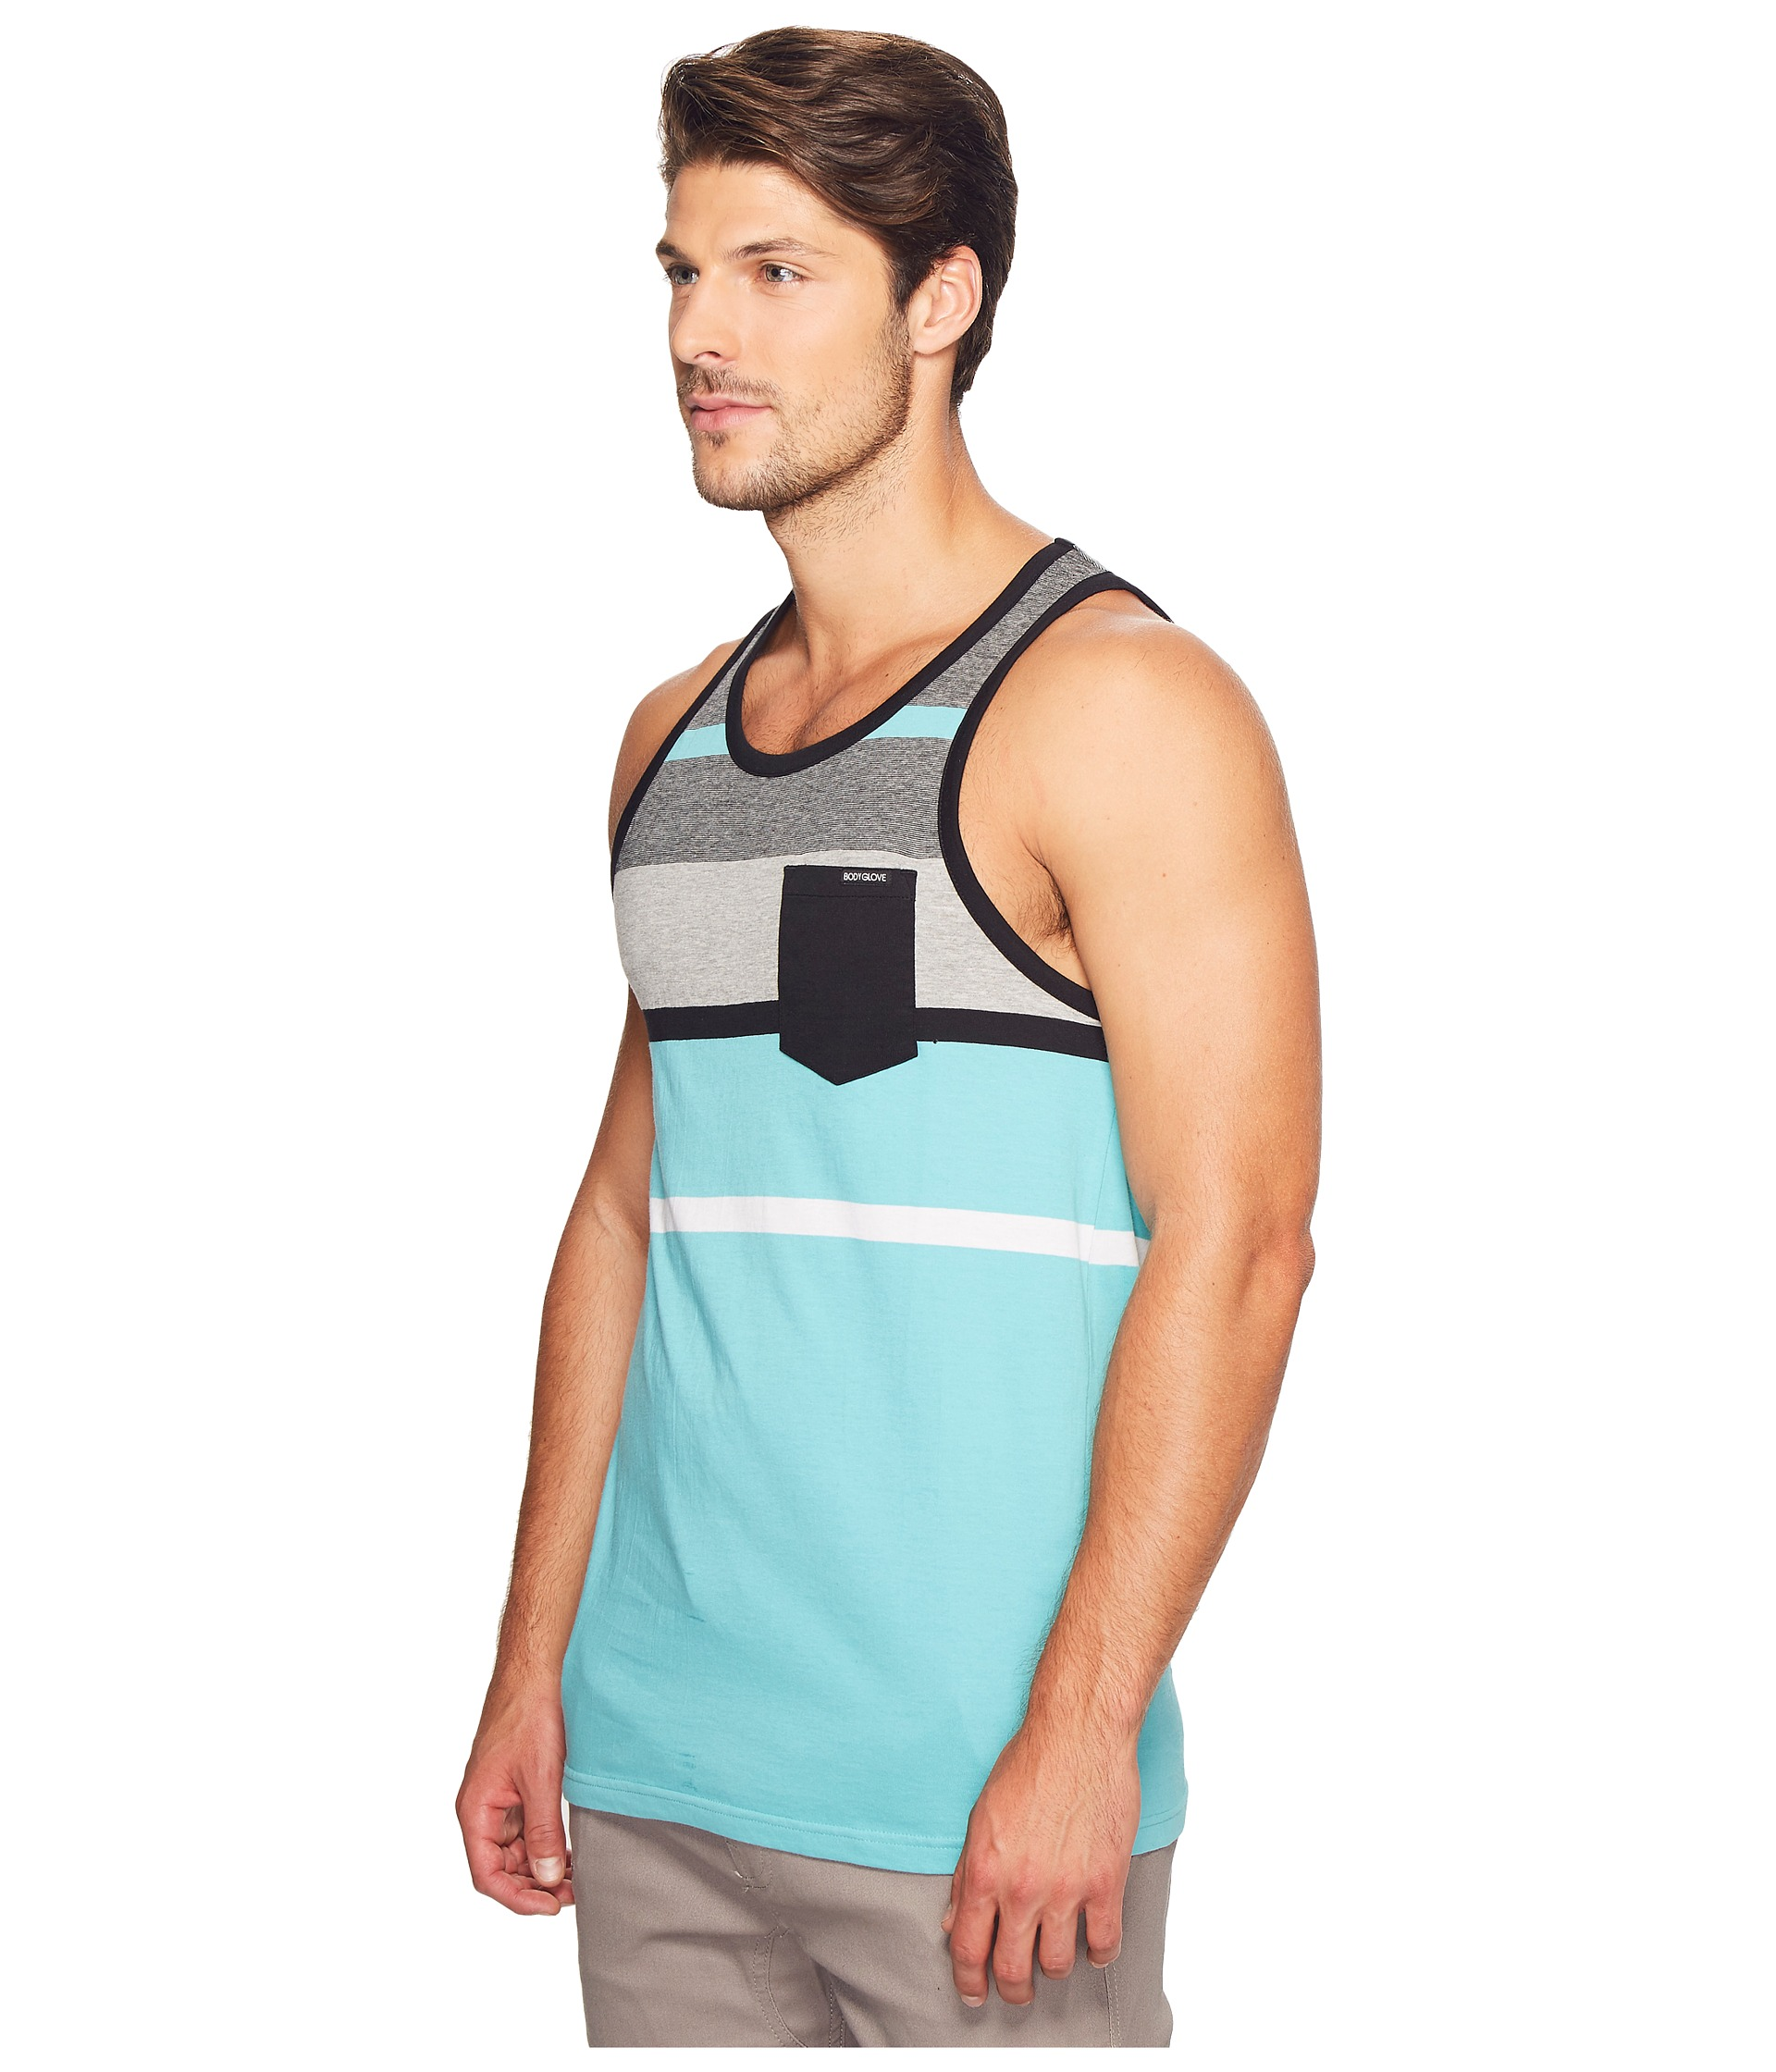 Body Glove Women's Borasco Tank Top Average rating: 0 out of 5 stars, based on 0 reviews Write a review This button opens a dialog that displays additional images for this product with the option to .